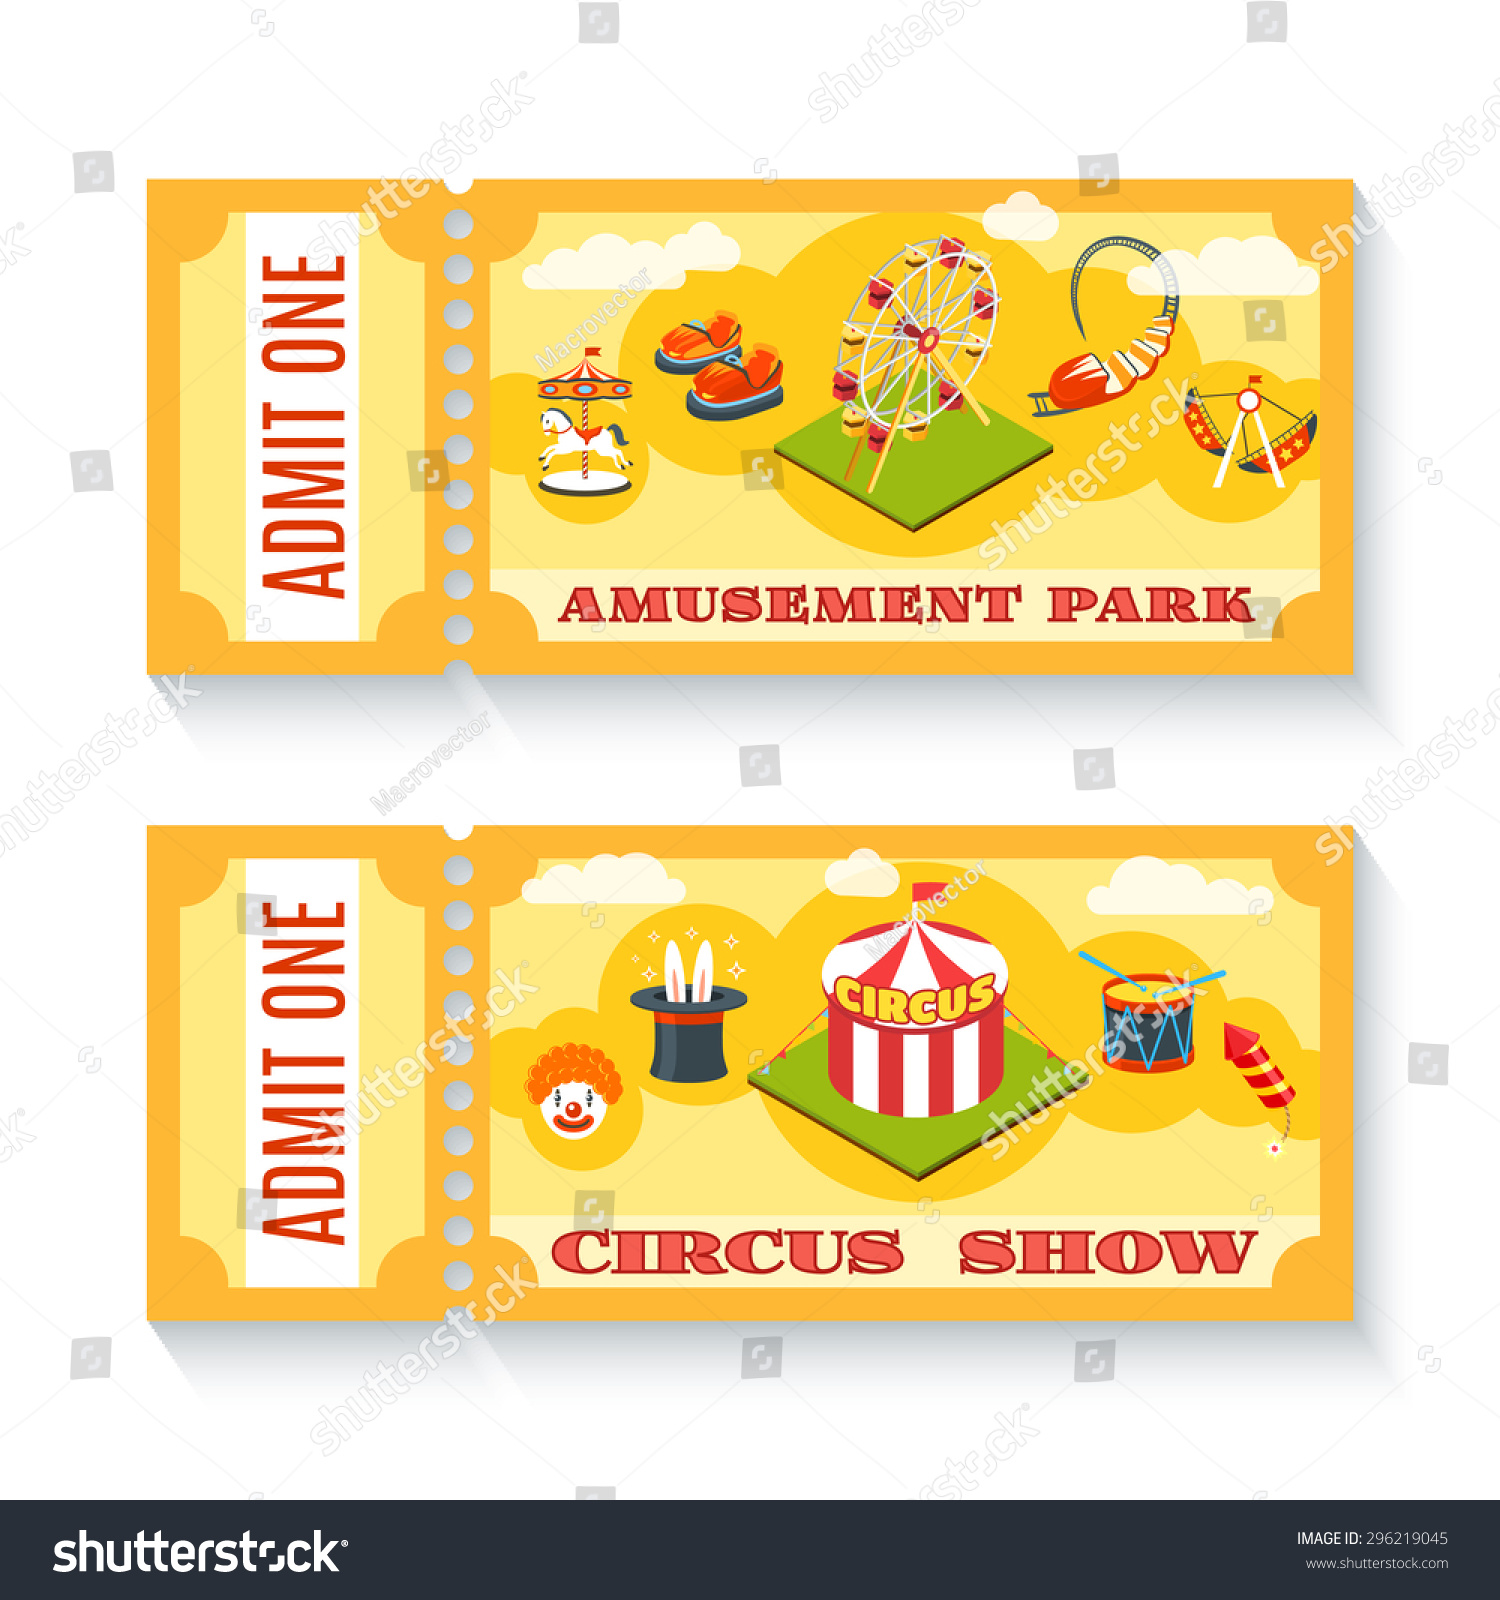 two vintage amusement park circus show stock vector  two vintage amusement park circus show entrance tickets templates set chapiteau tent abstract isolated vector